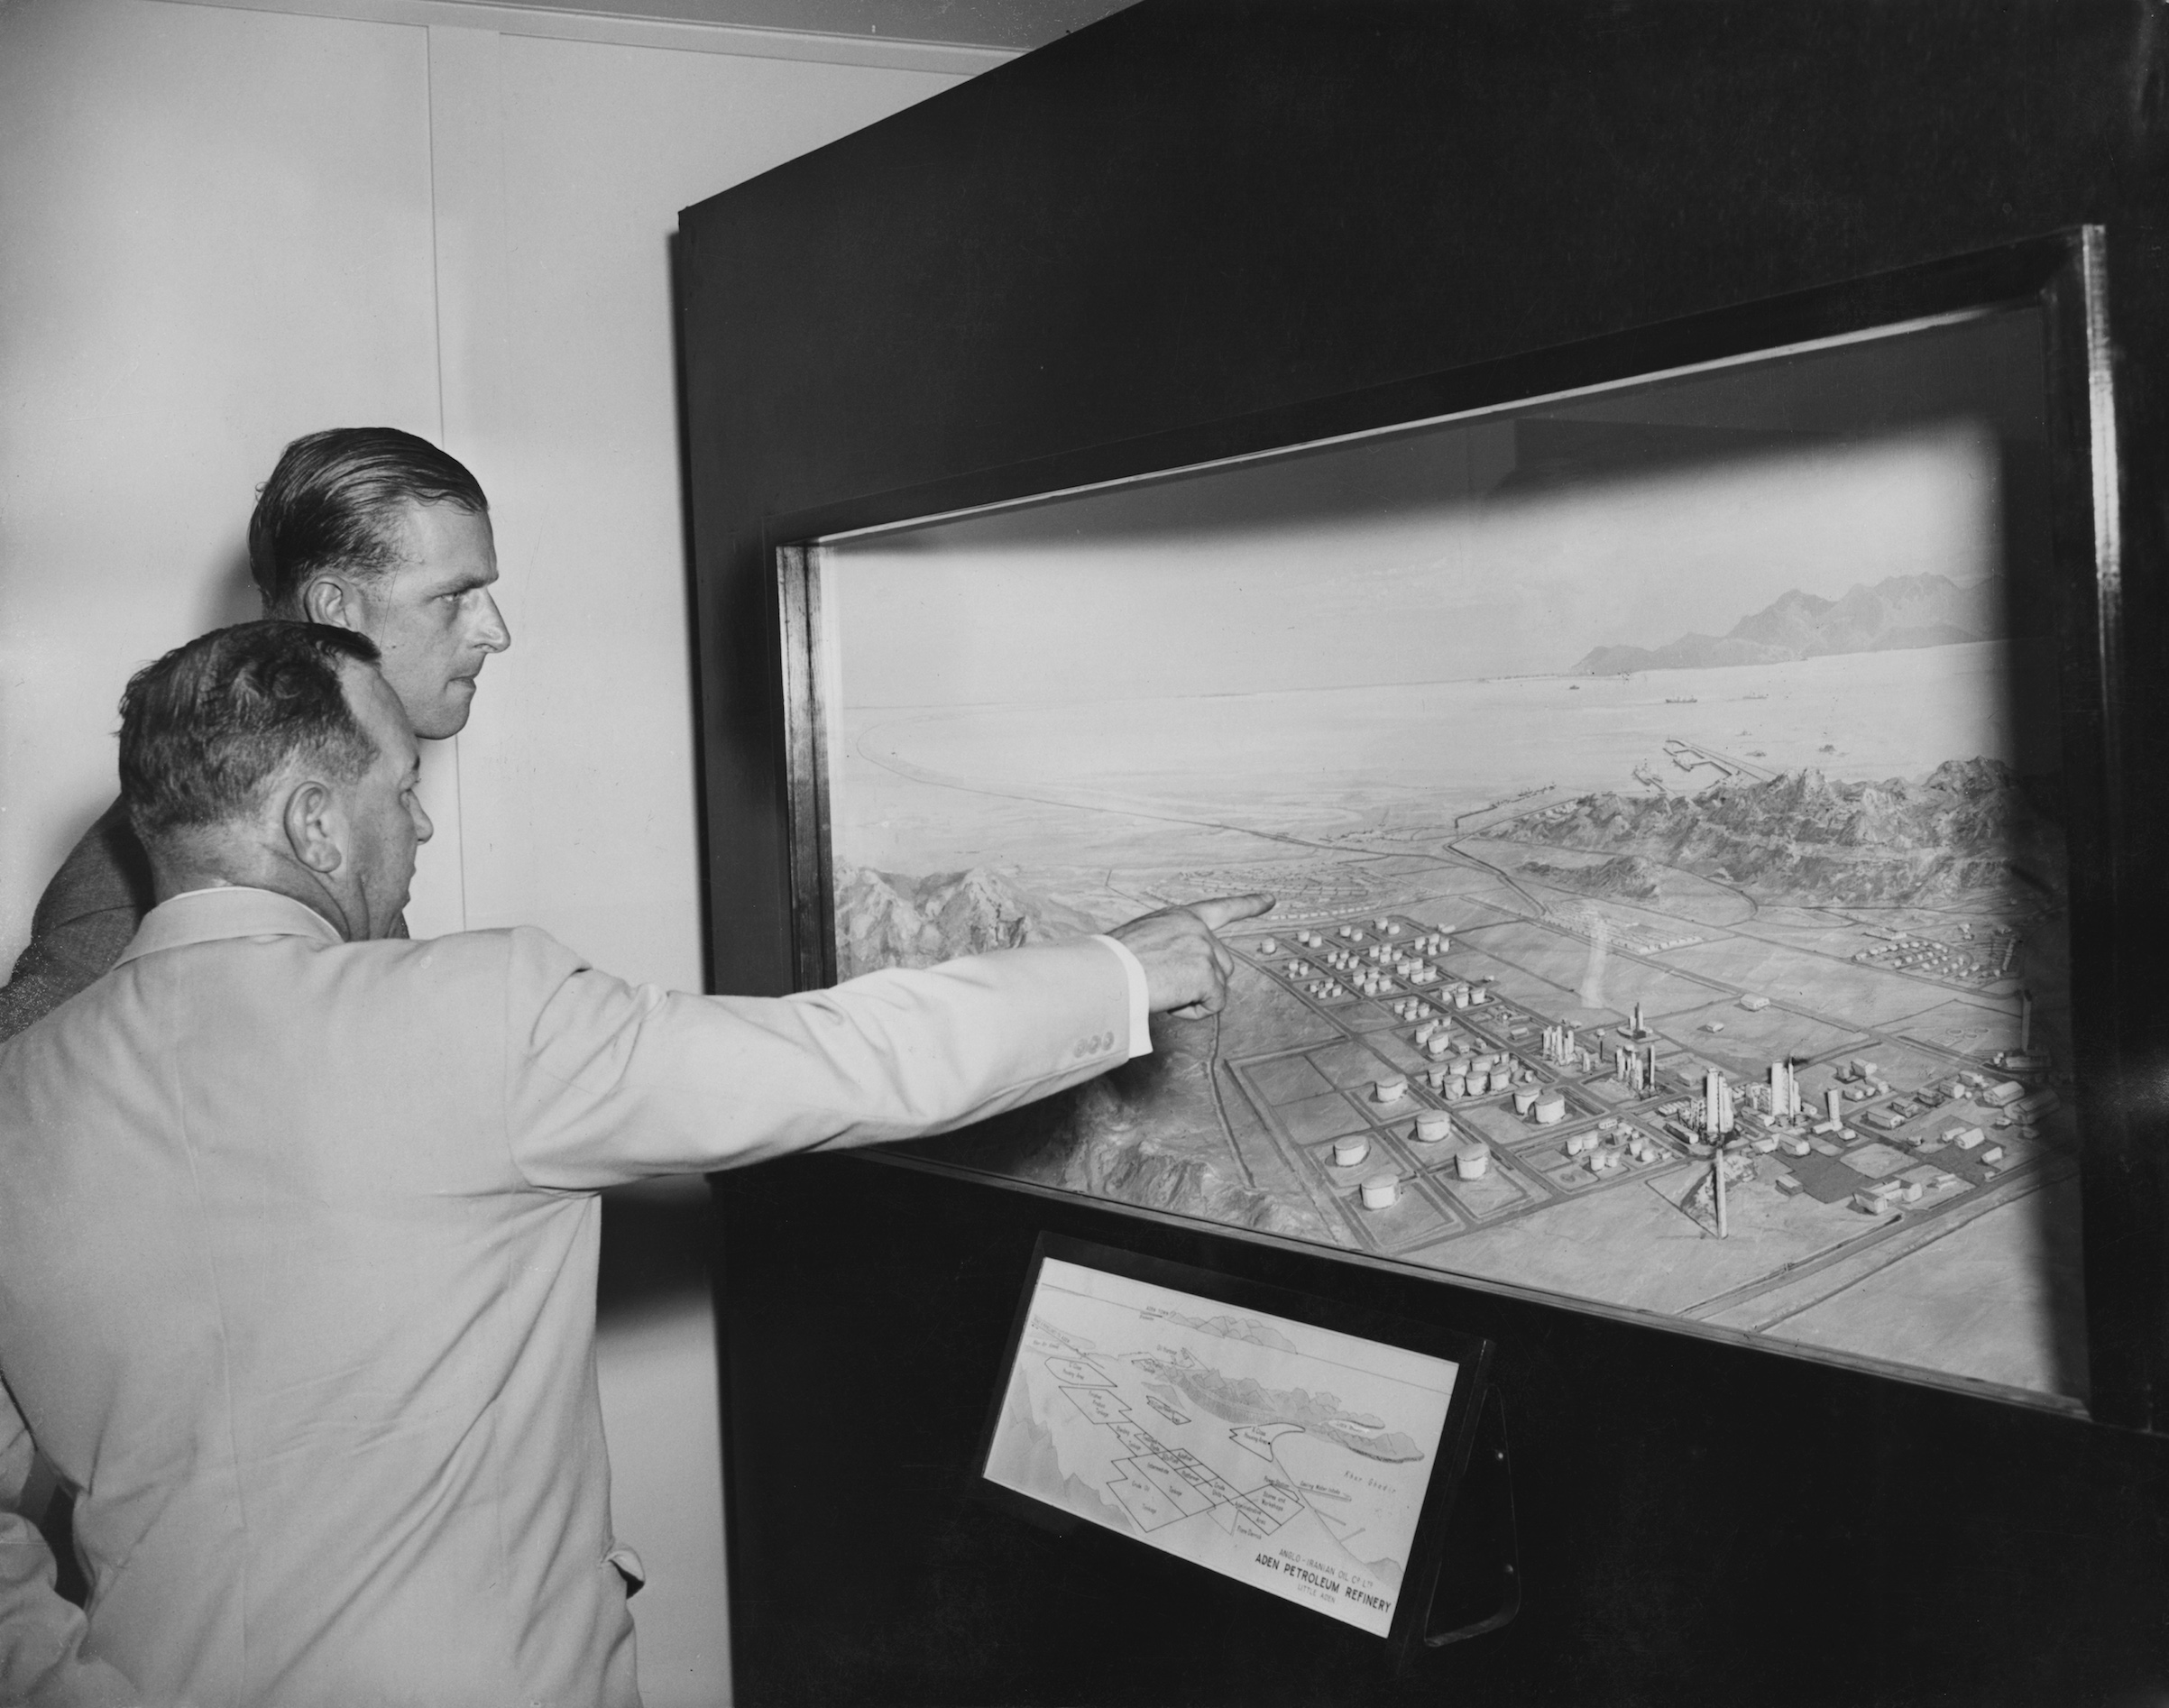 Prince Philip, Duke of Edinburgh visits the Aden Petroleum Refinery, an Anglo-Iranian Oil Company refinery at Little Aden during a Commonwealth visit to Yemen, April 27,1954. Here he is shown a panoramic model of the refinery by General Manager A. W. G. Trantor.